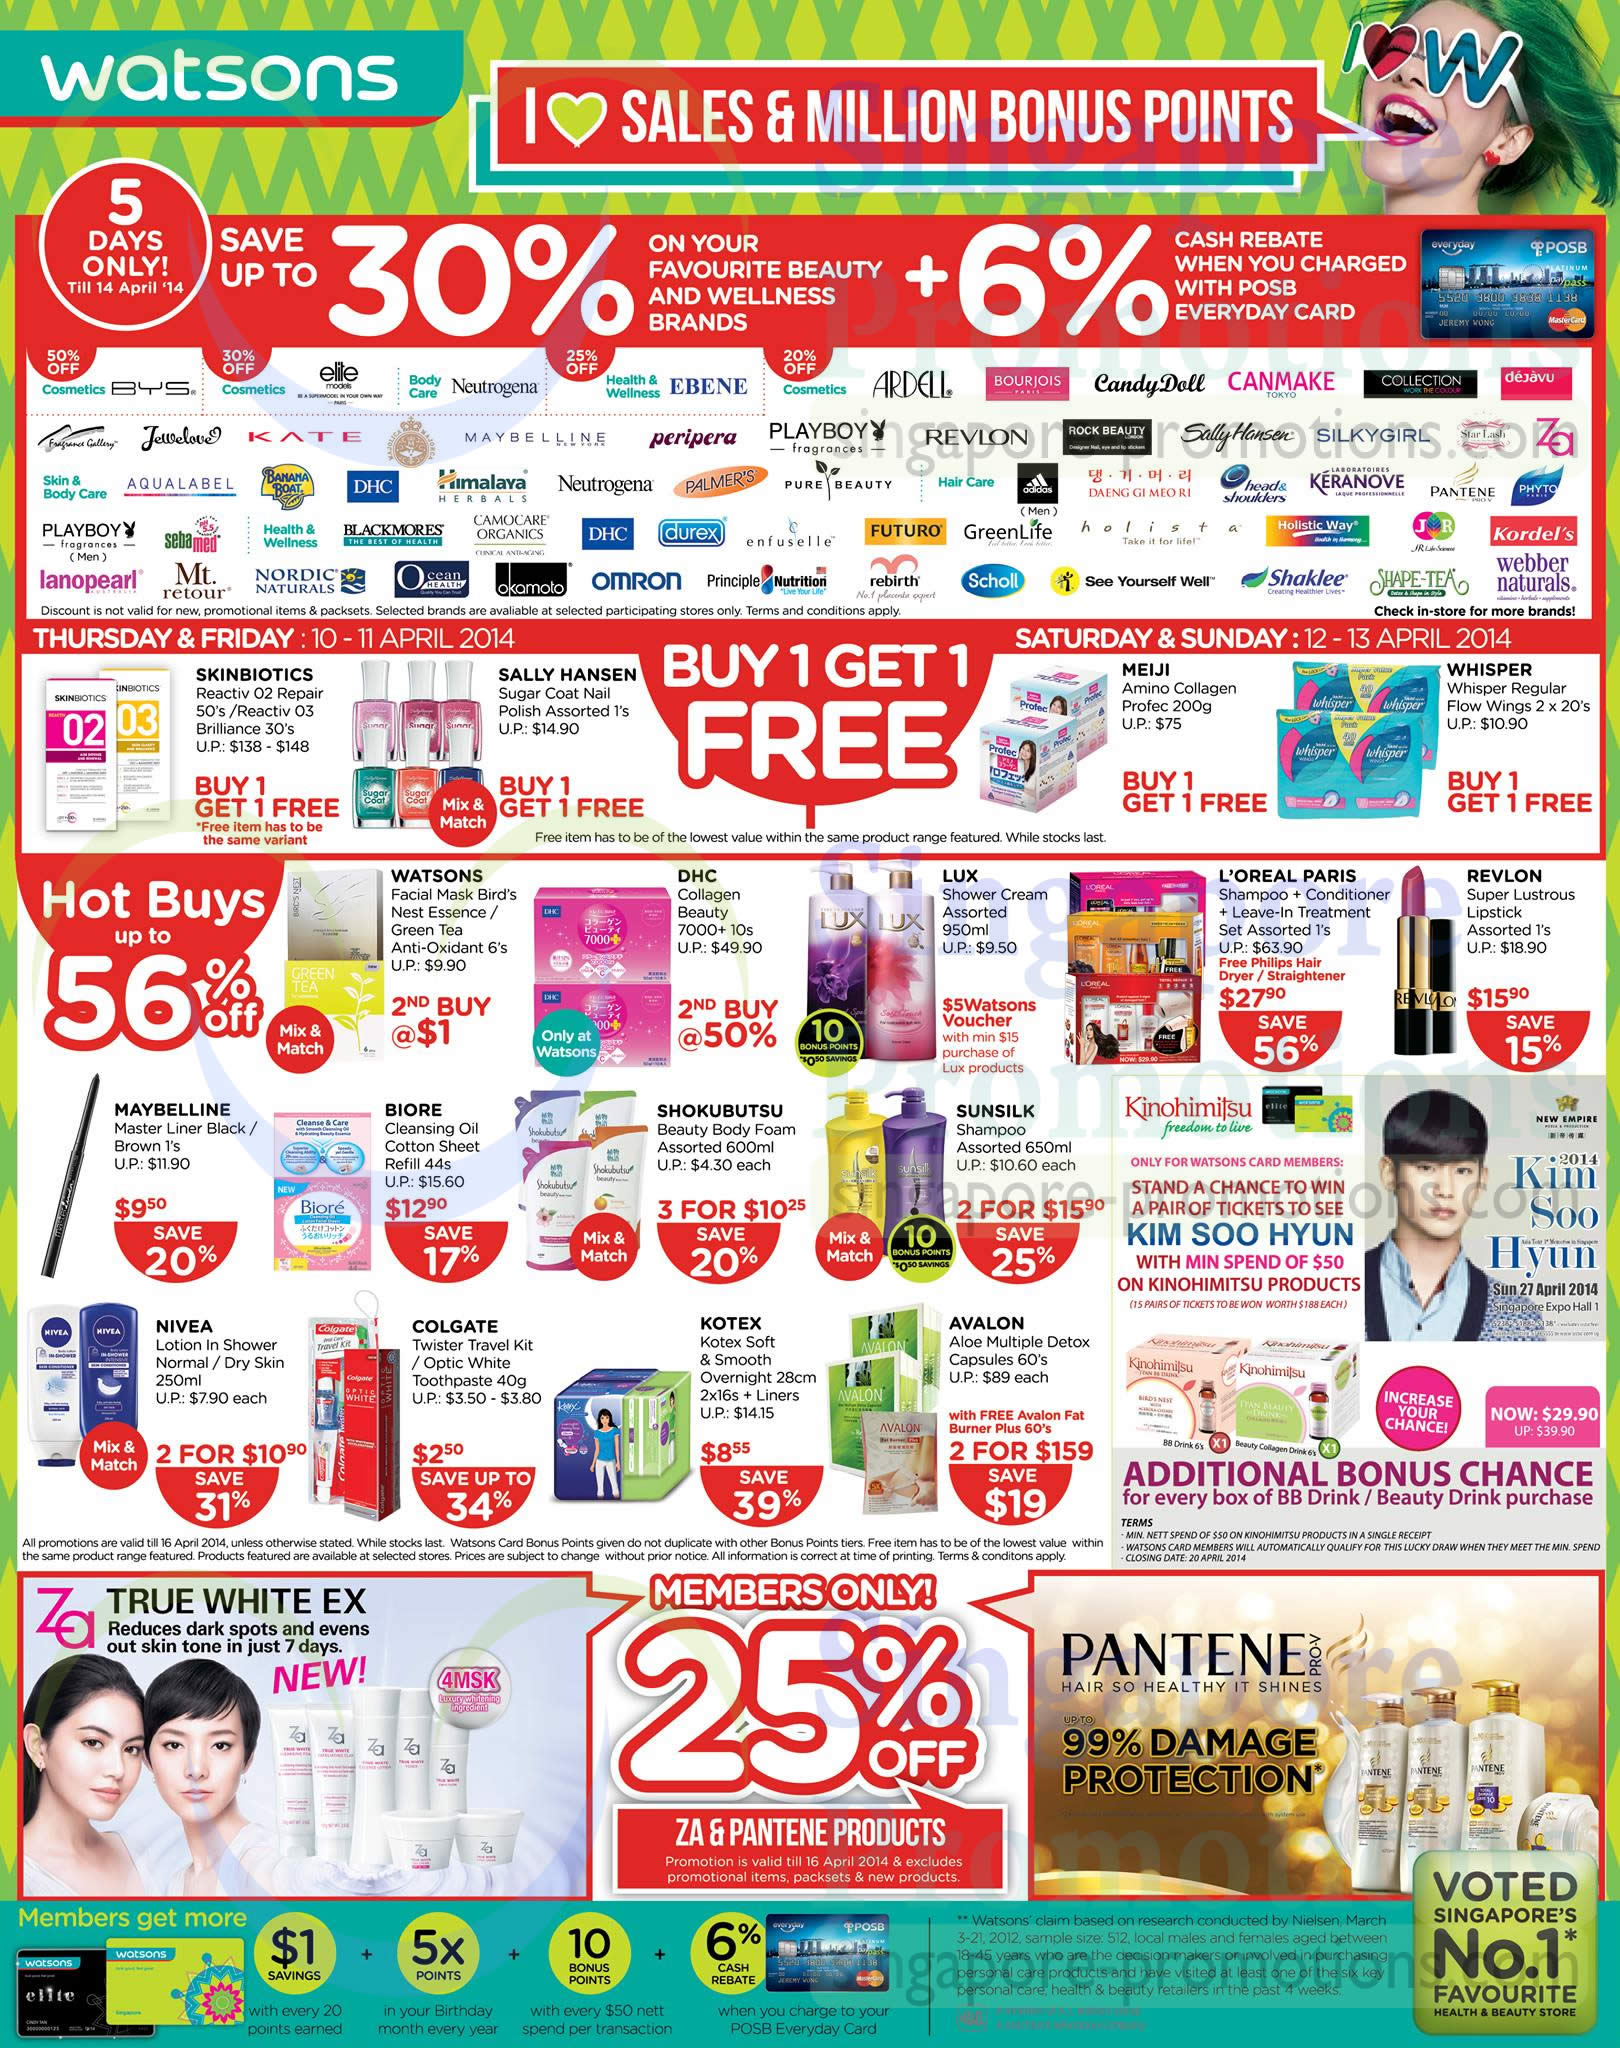 Buy 1 Get 1 Free, Hot Buys Up To 56 Percent Off